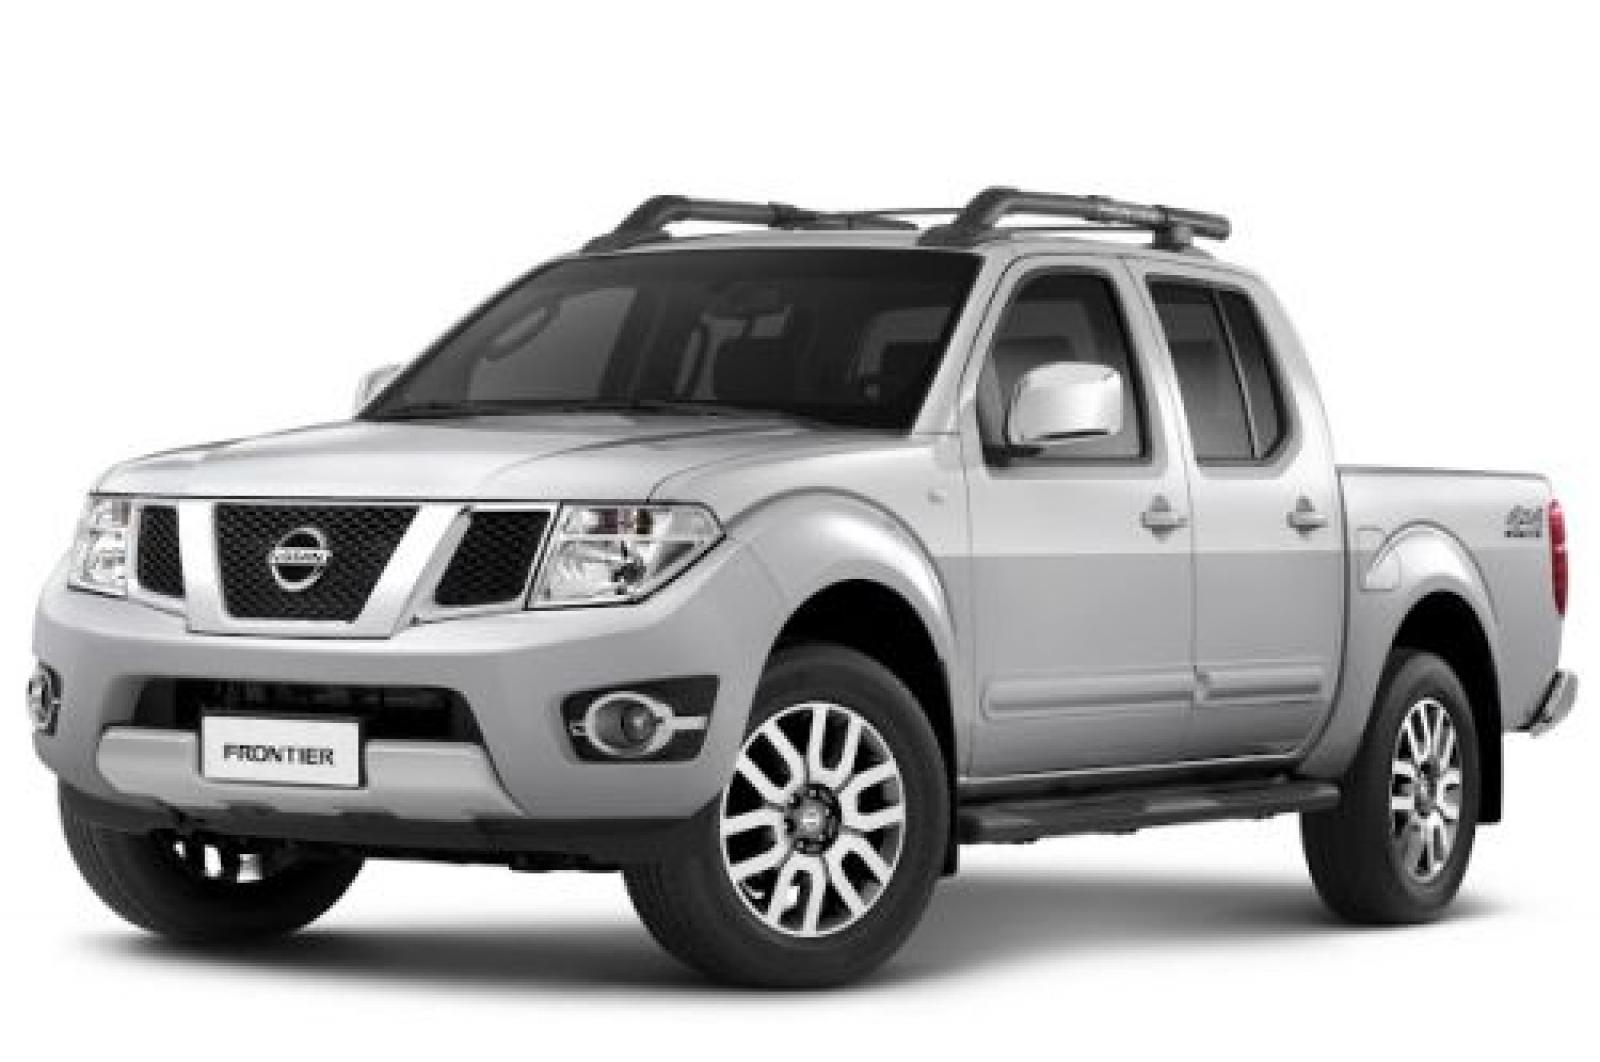 2015 nissan frontier information and photos zombiedrive. Black Bedroom Furniture Sets. Home Design Ideas